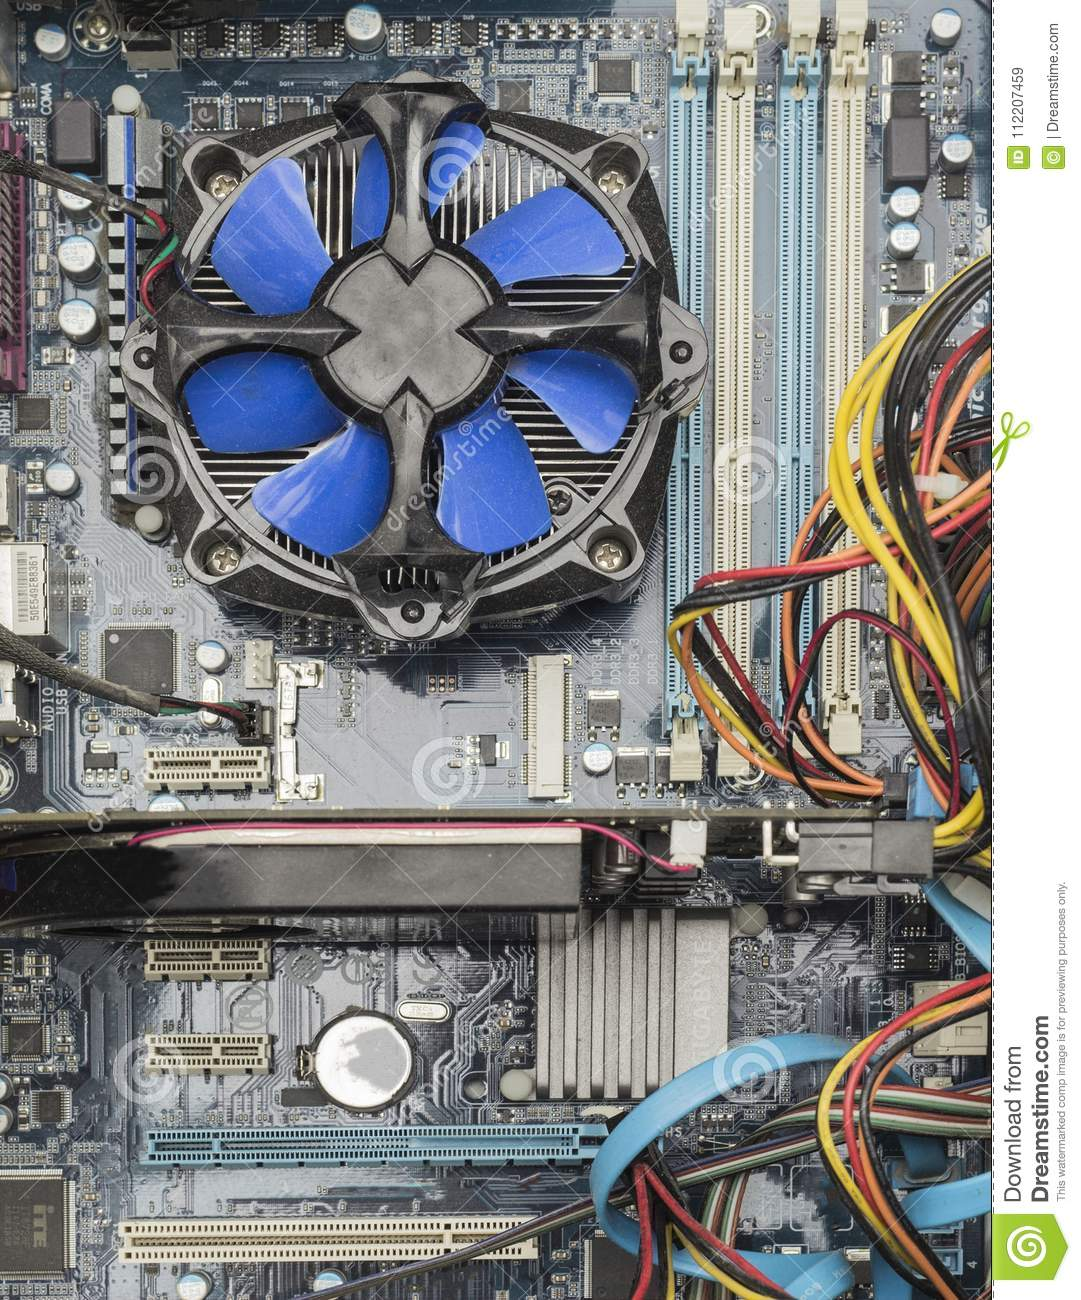 Top view of blue cpu fan and Video Card on motherboard.